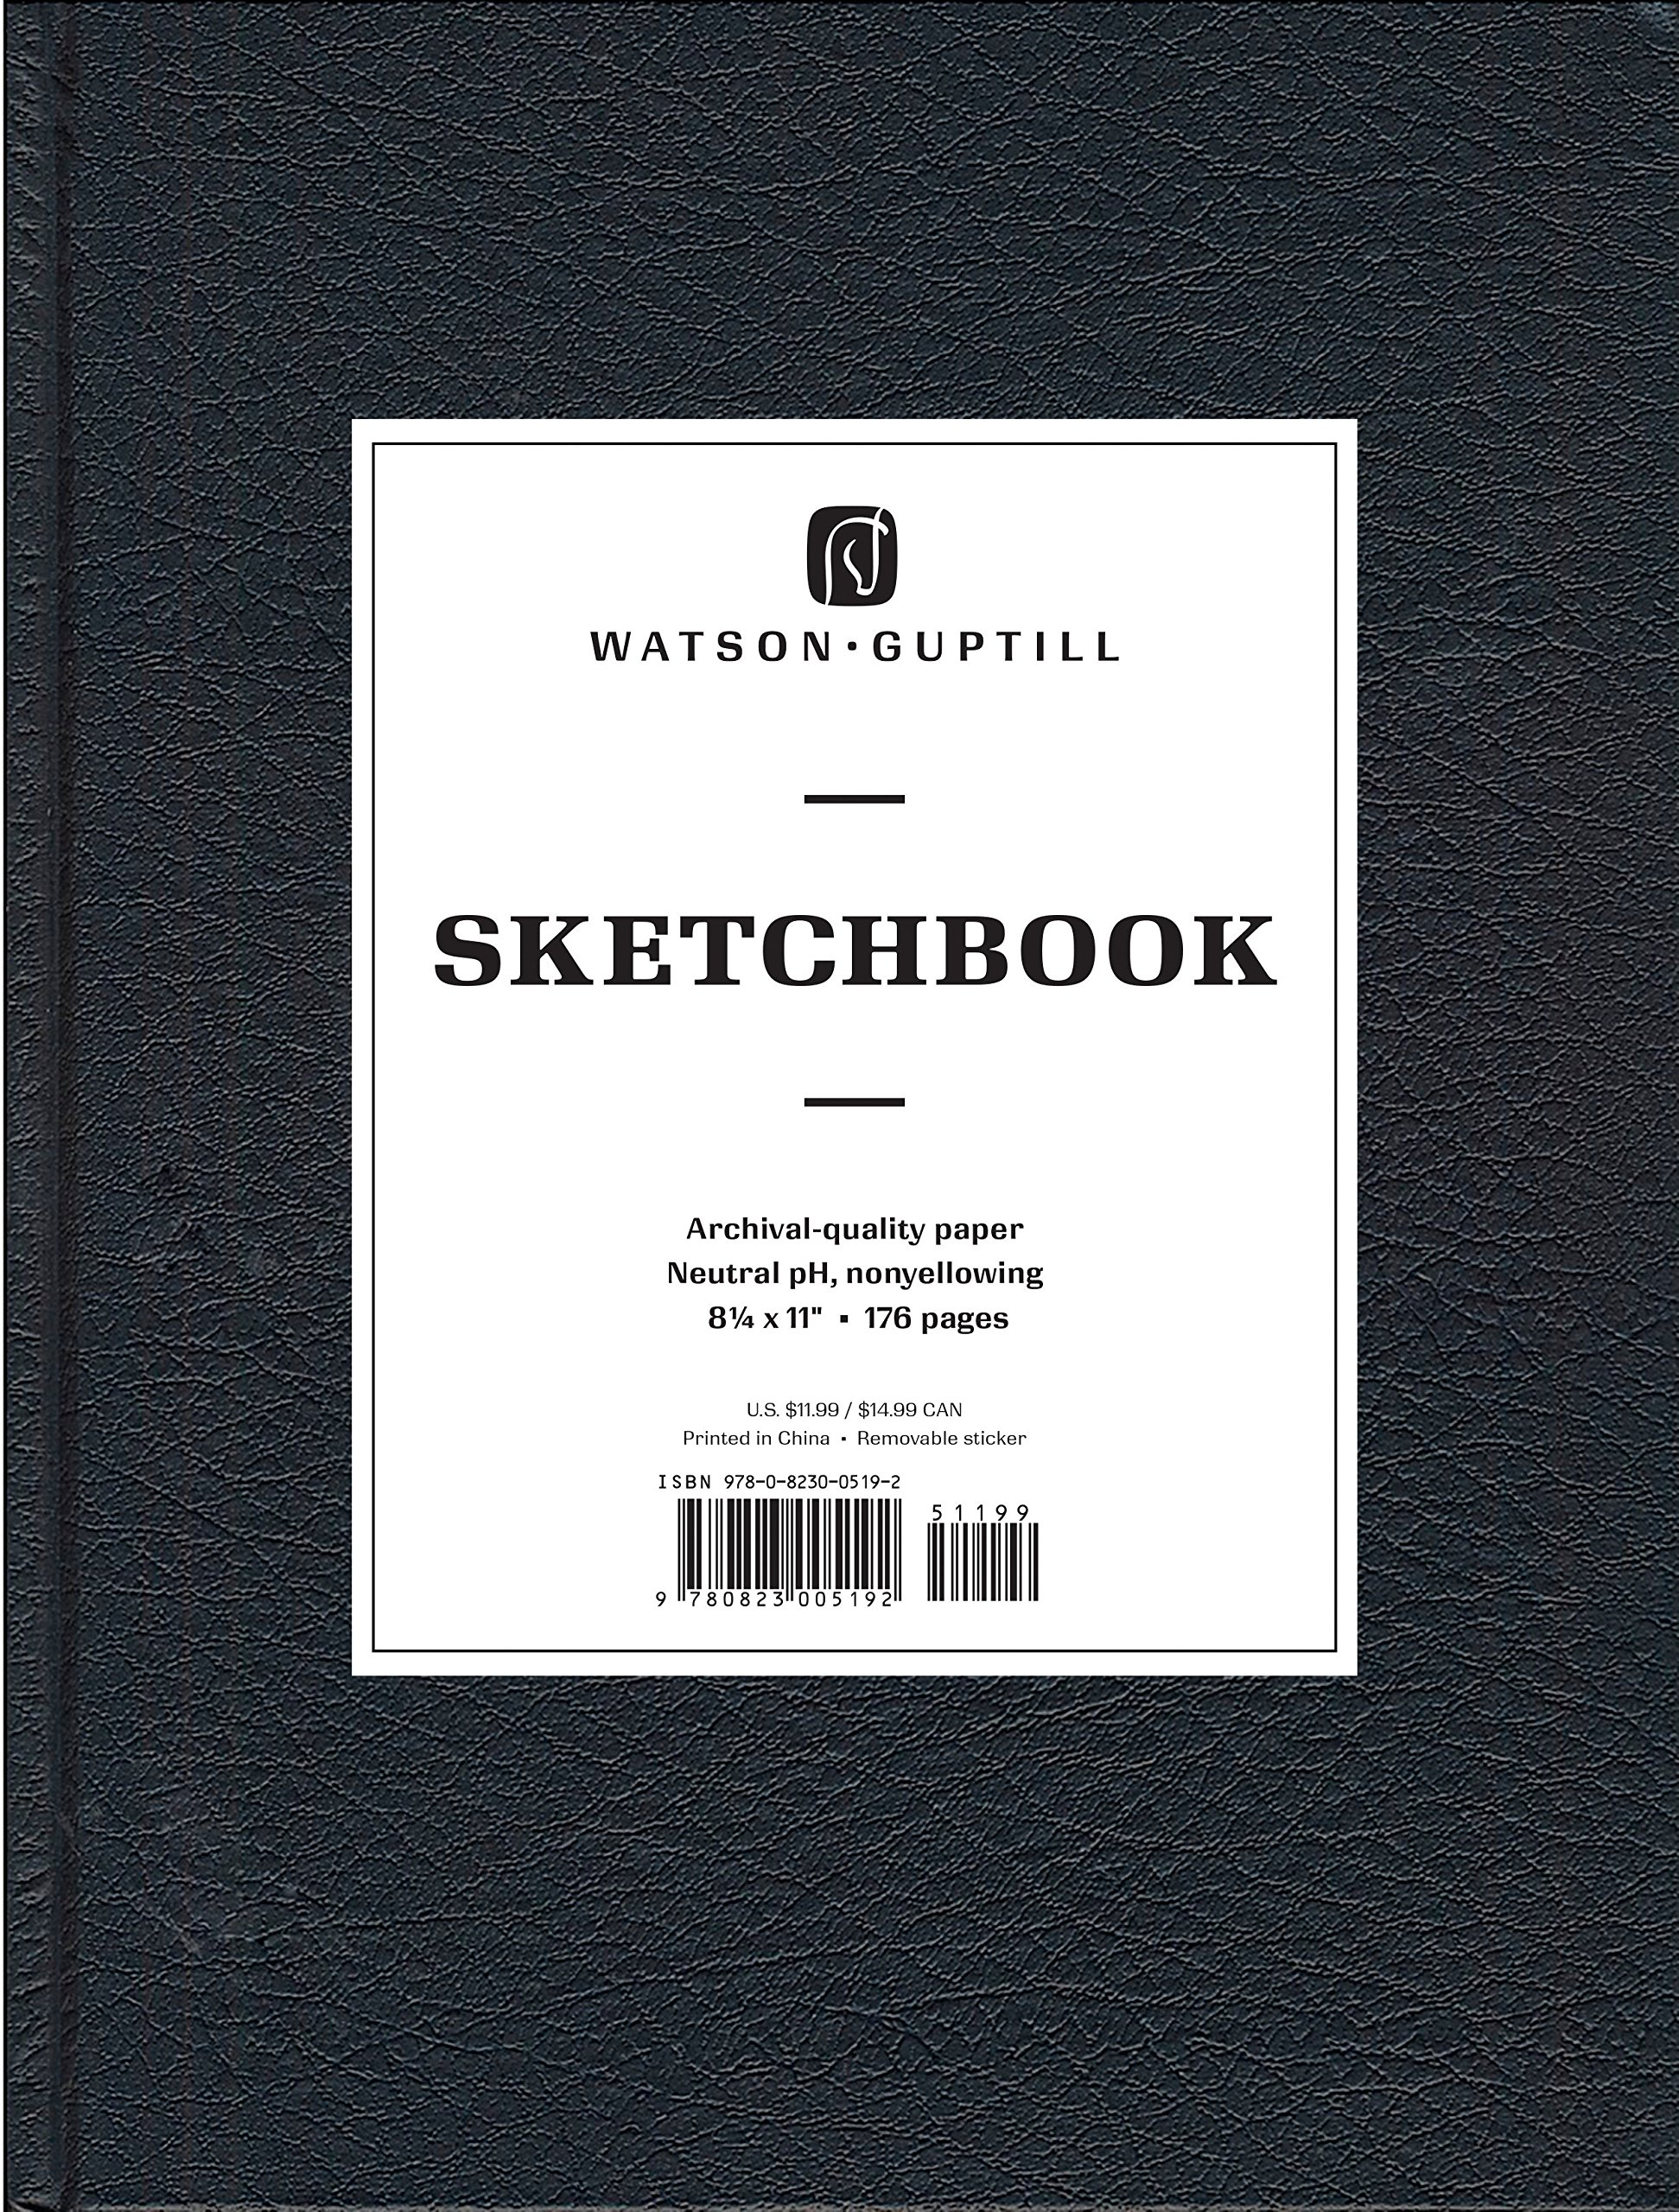 Large Sketchbook Kivar Watson Guptill Sketchbooks product image